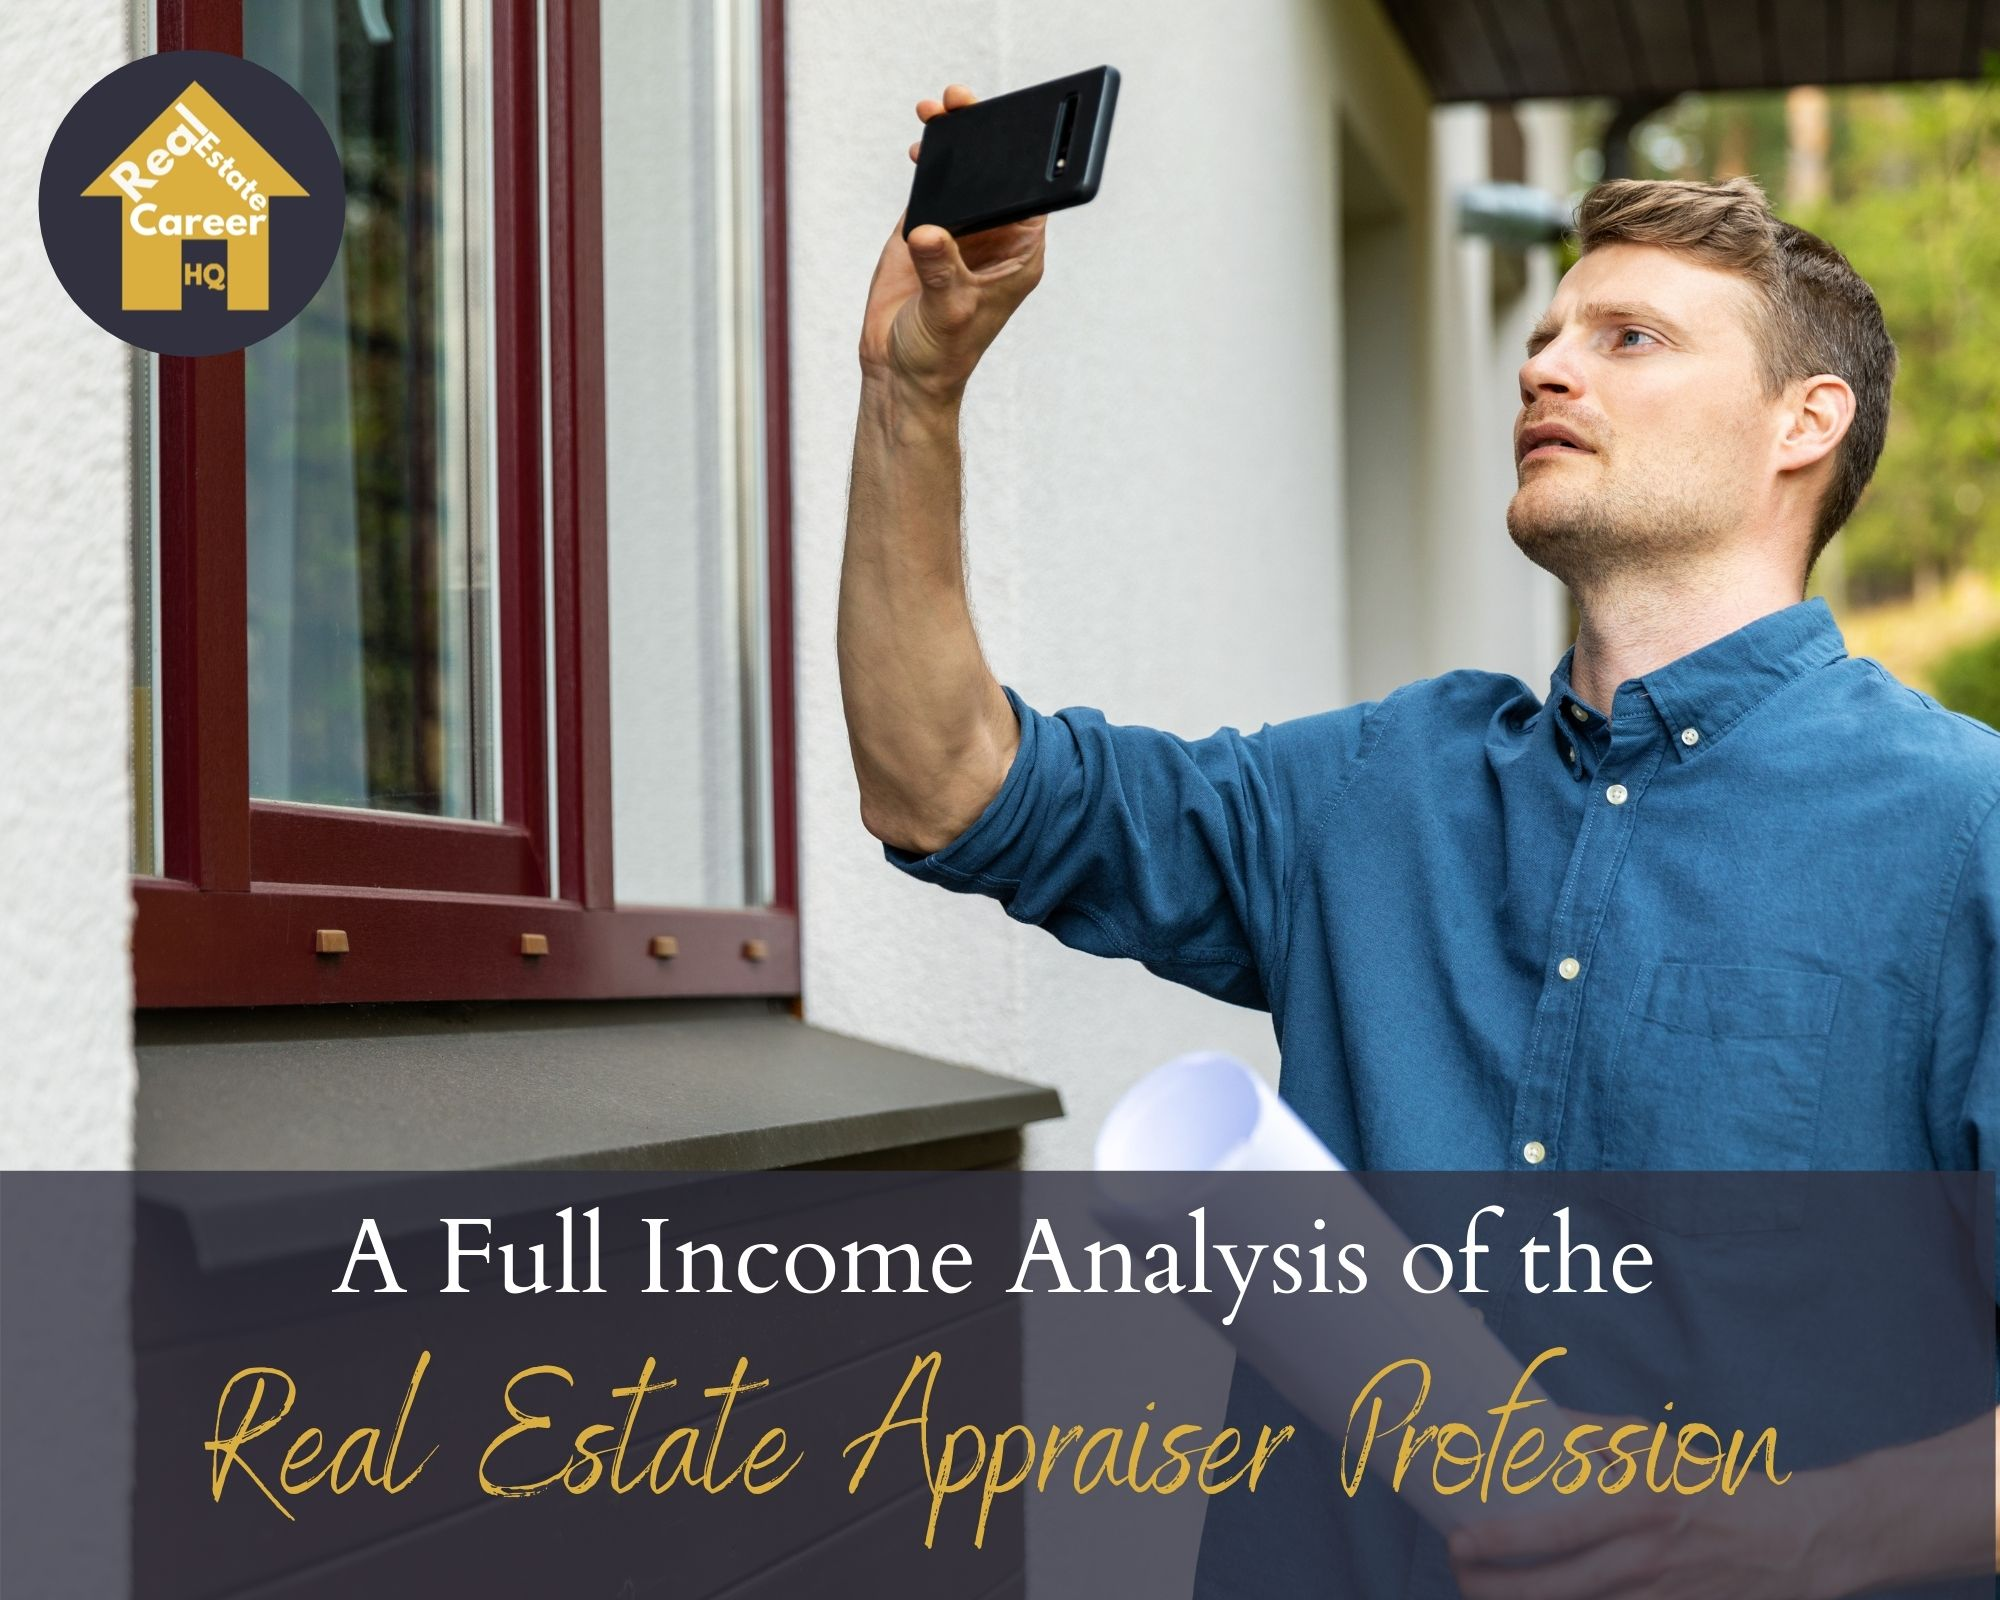 How much do real estate appraisers make? (Feature image)